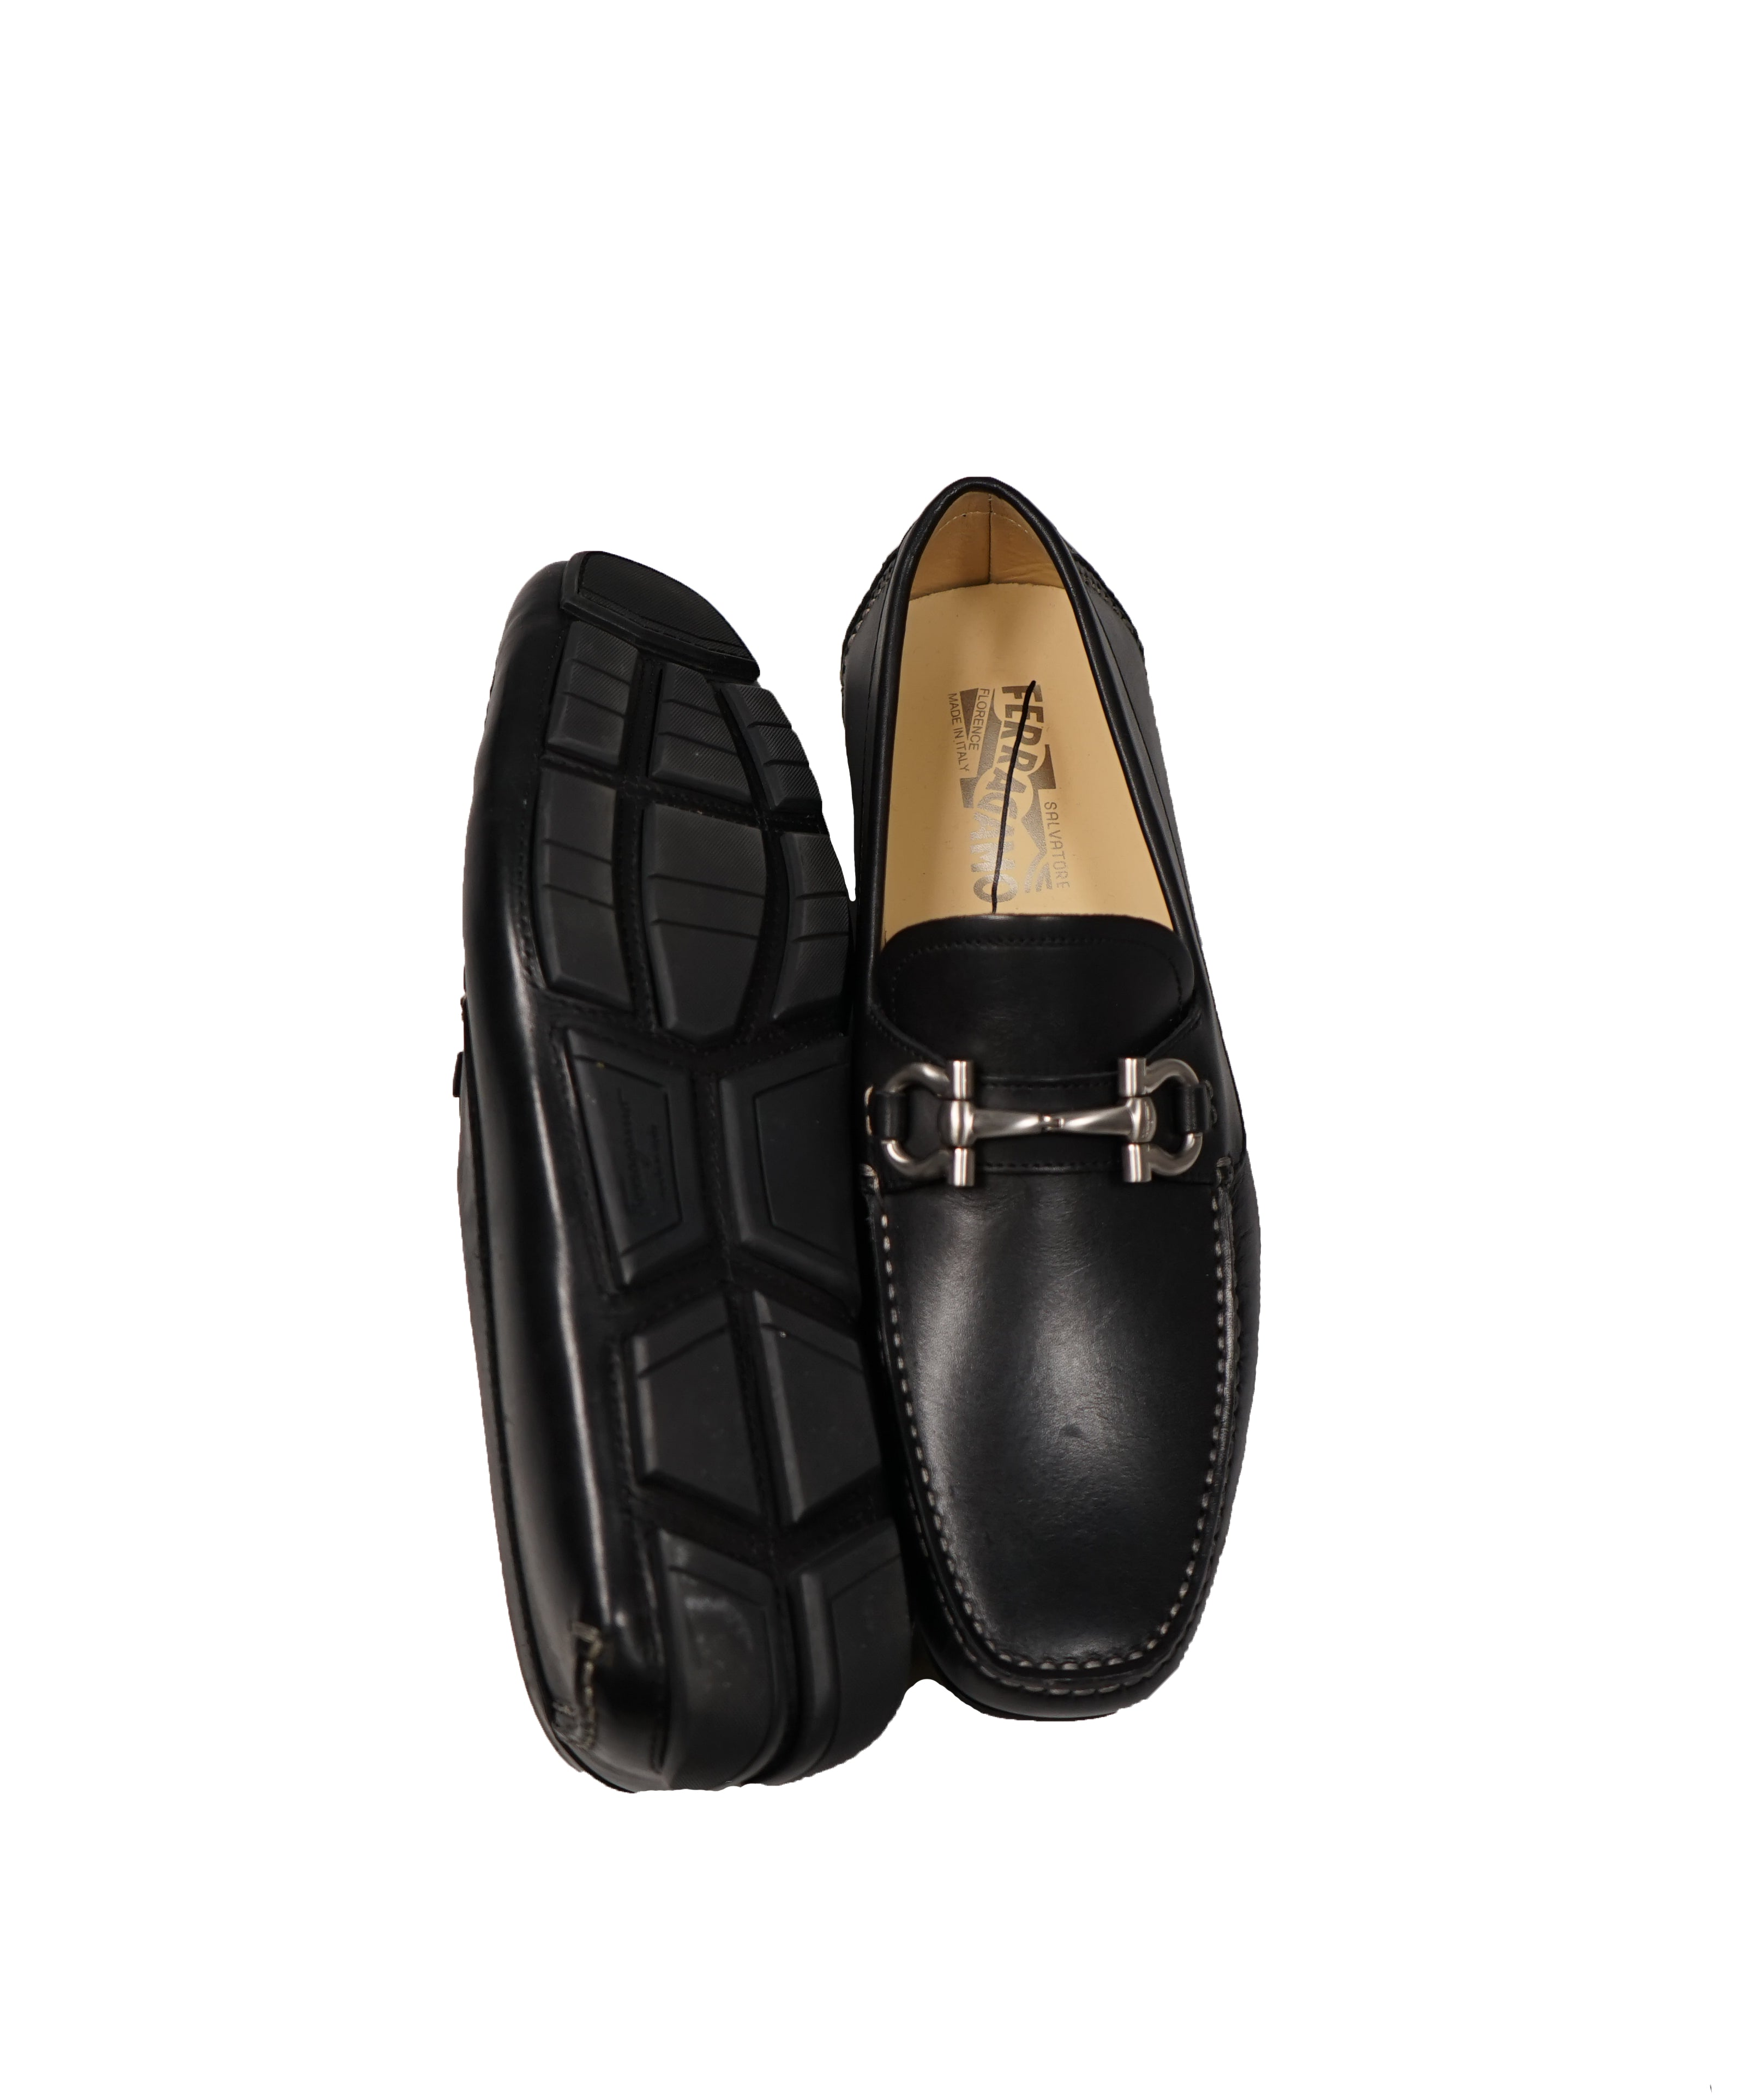 SALVATORE FERRAGAMO - Black Parigi Gancini Logo Loafers  - 8/8.5D